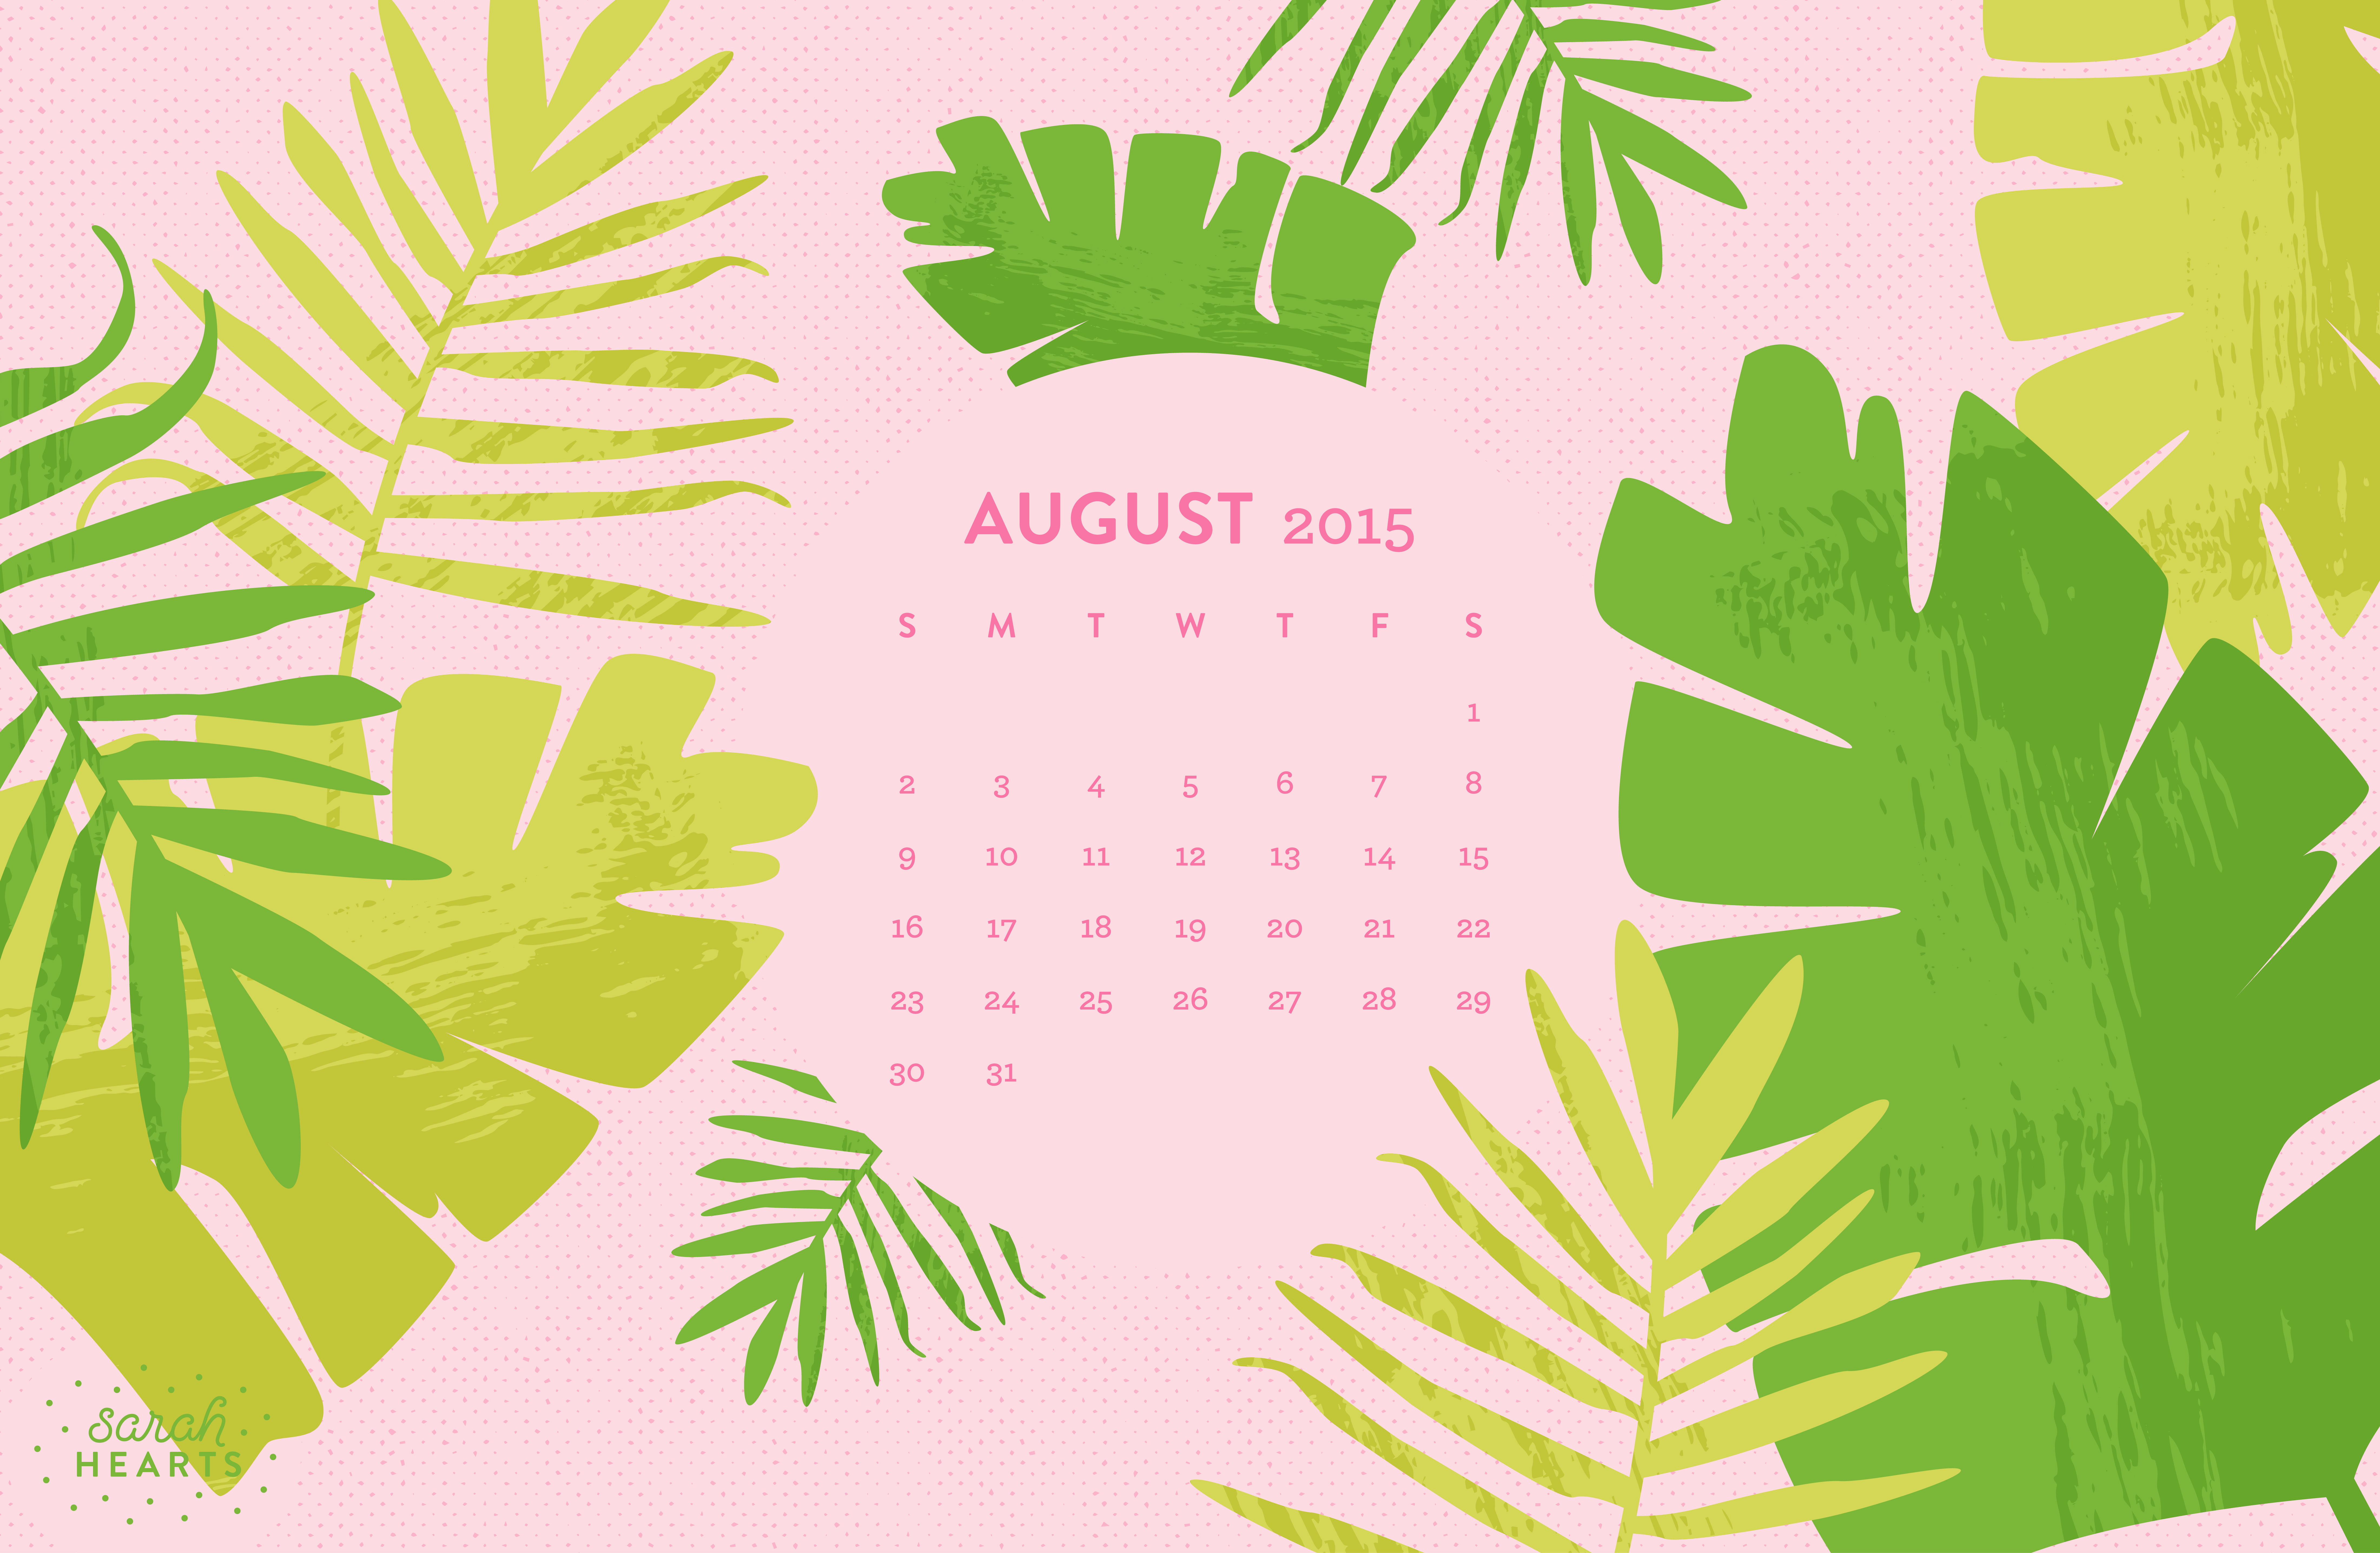 Calendar Wallpaper Mac : August calendar wallpaper sarah hearts